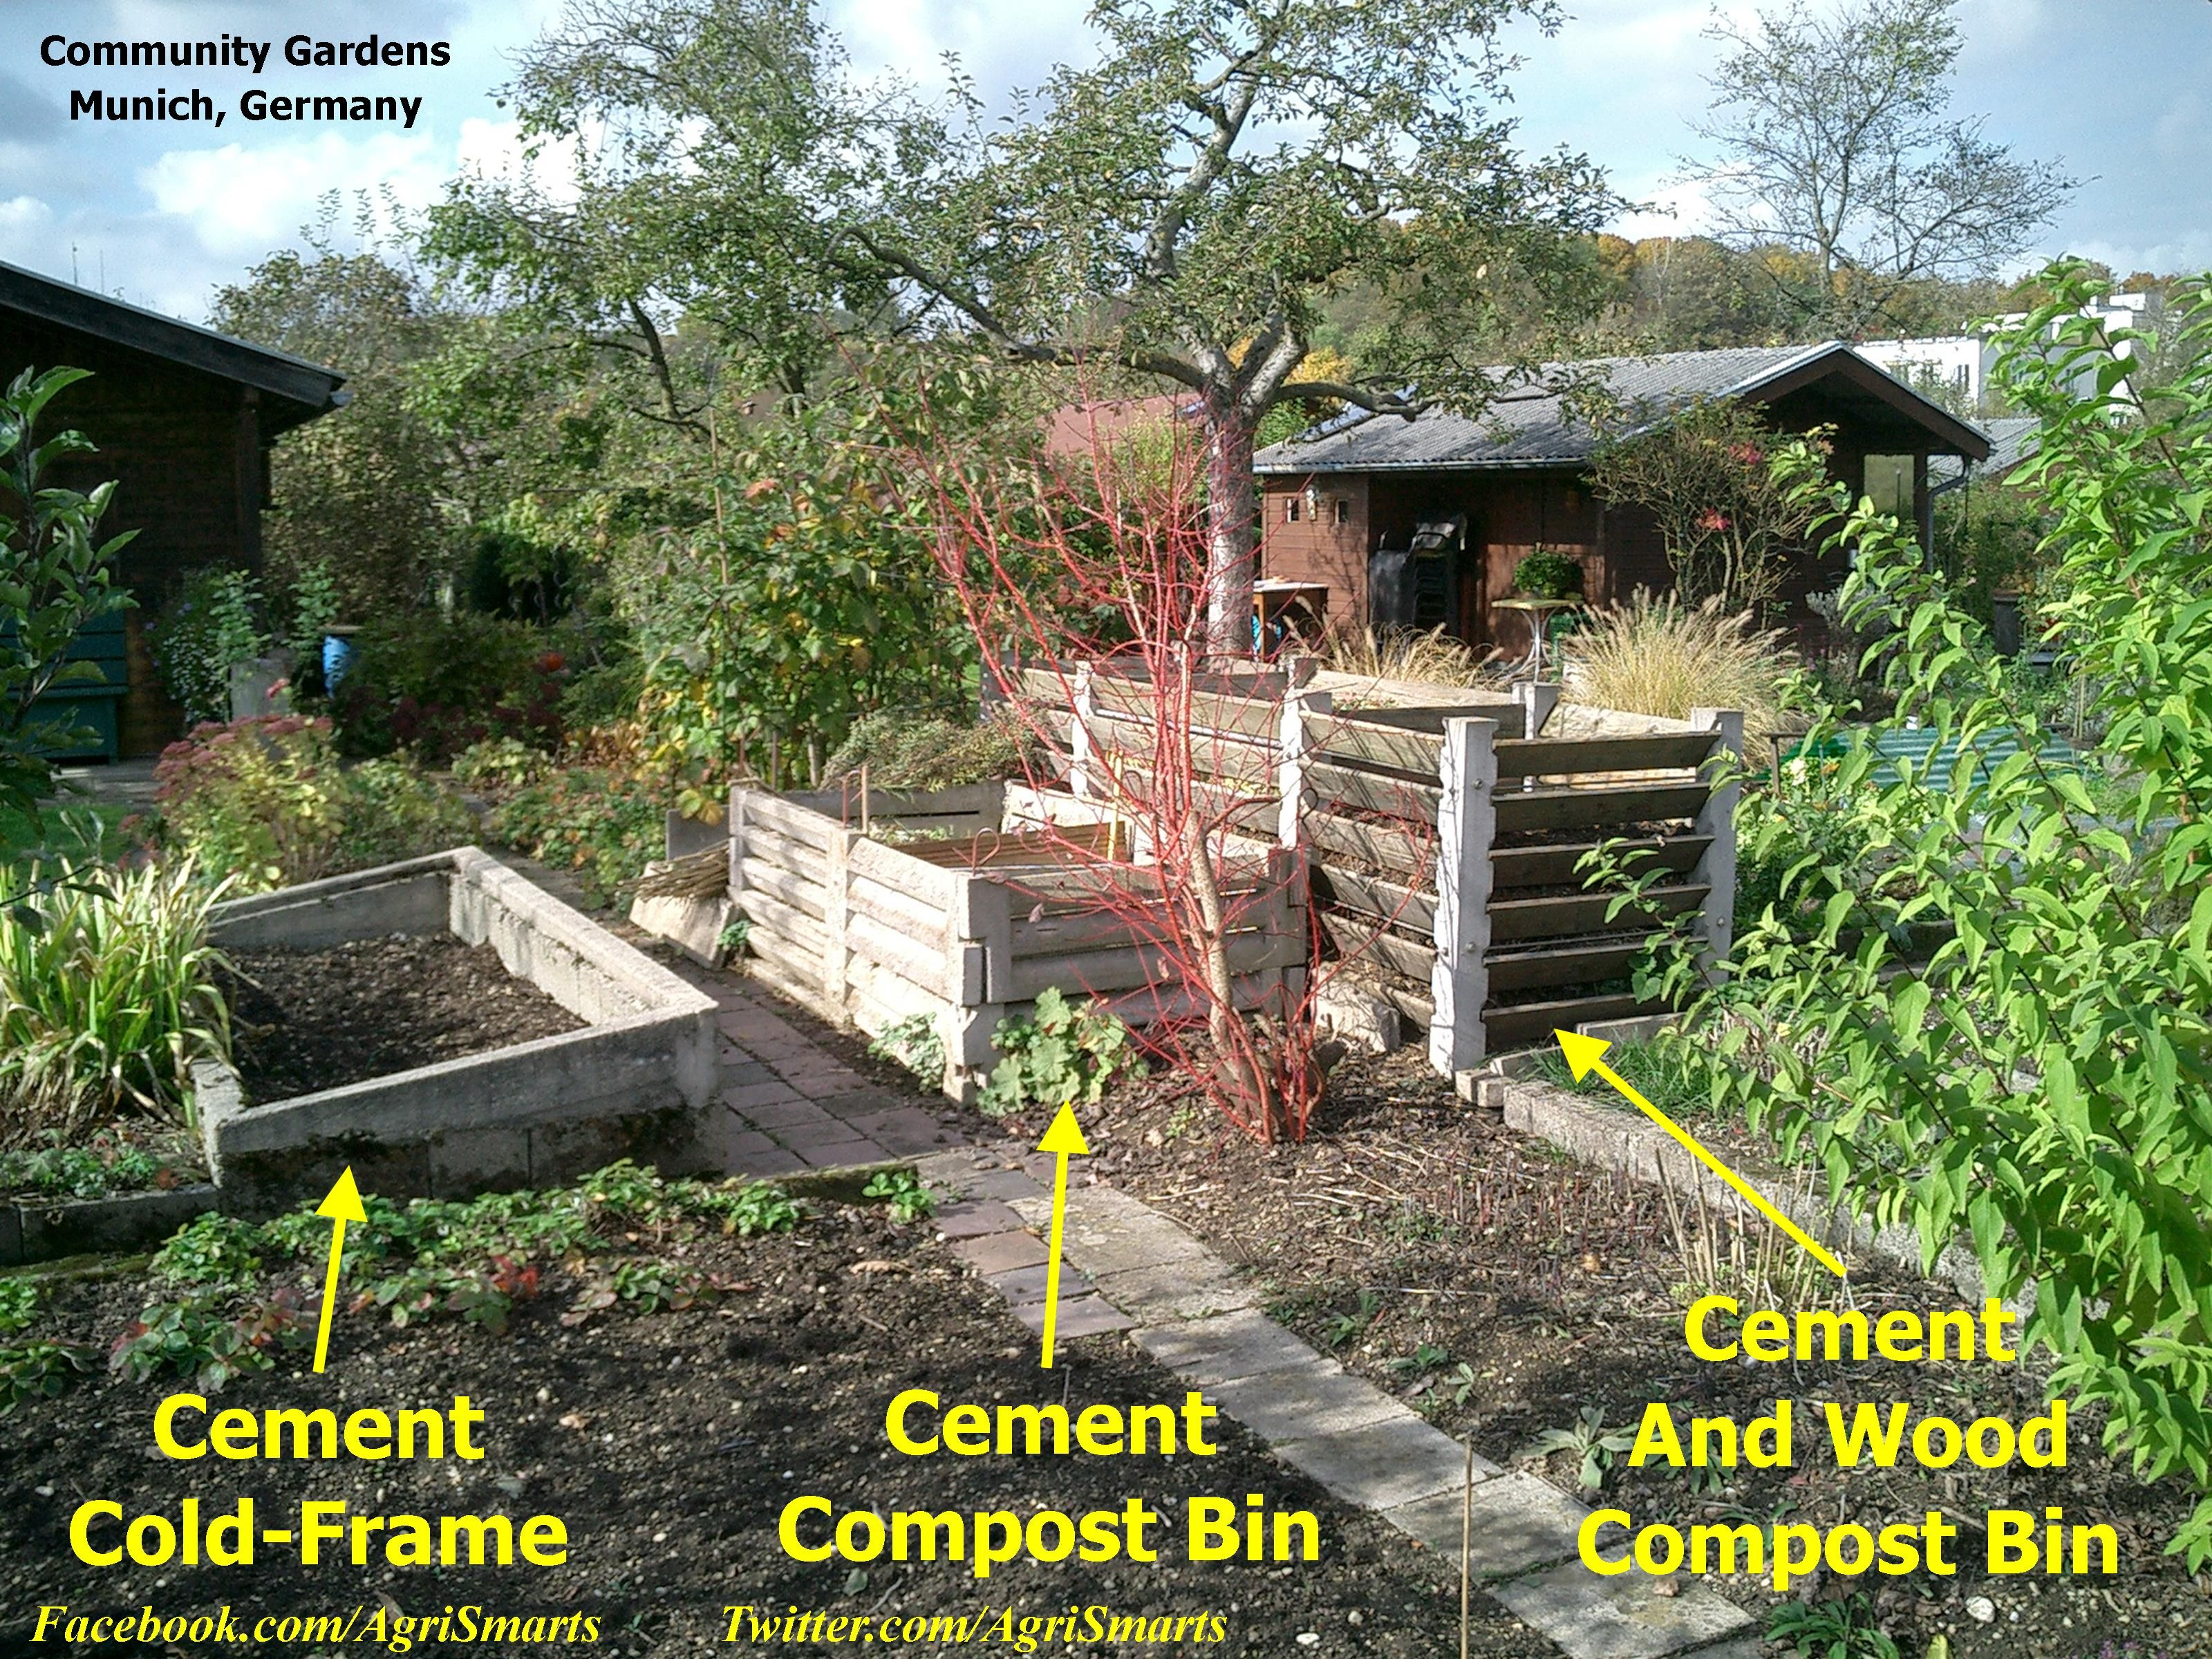 german engineering in the garden check out the concrete compost